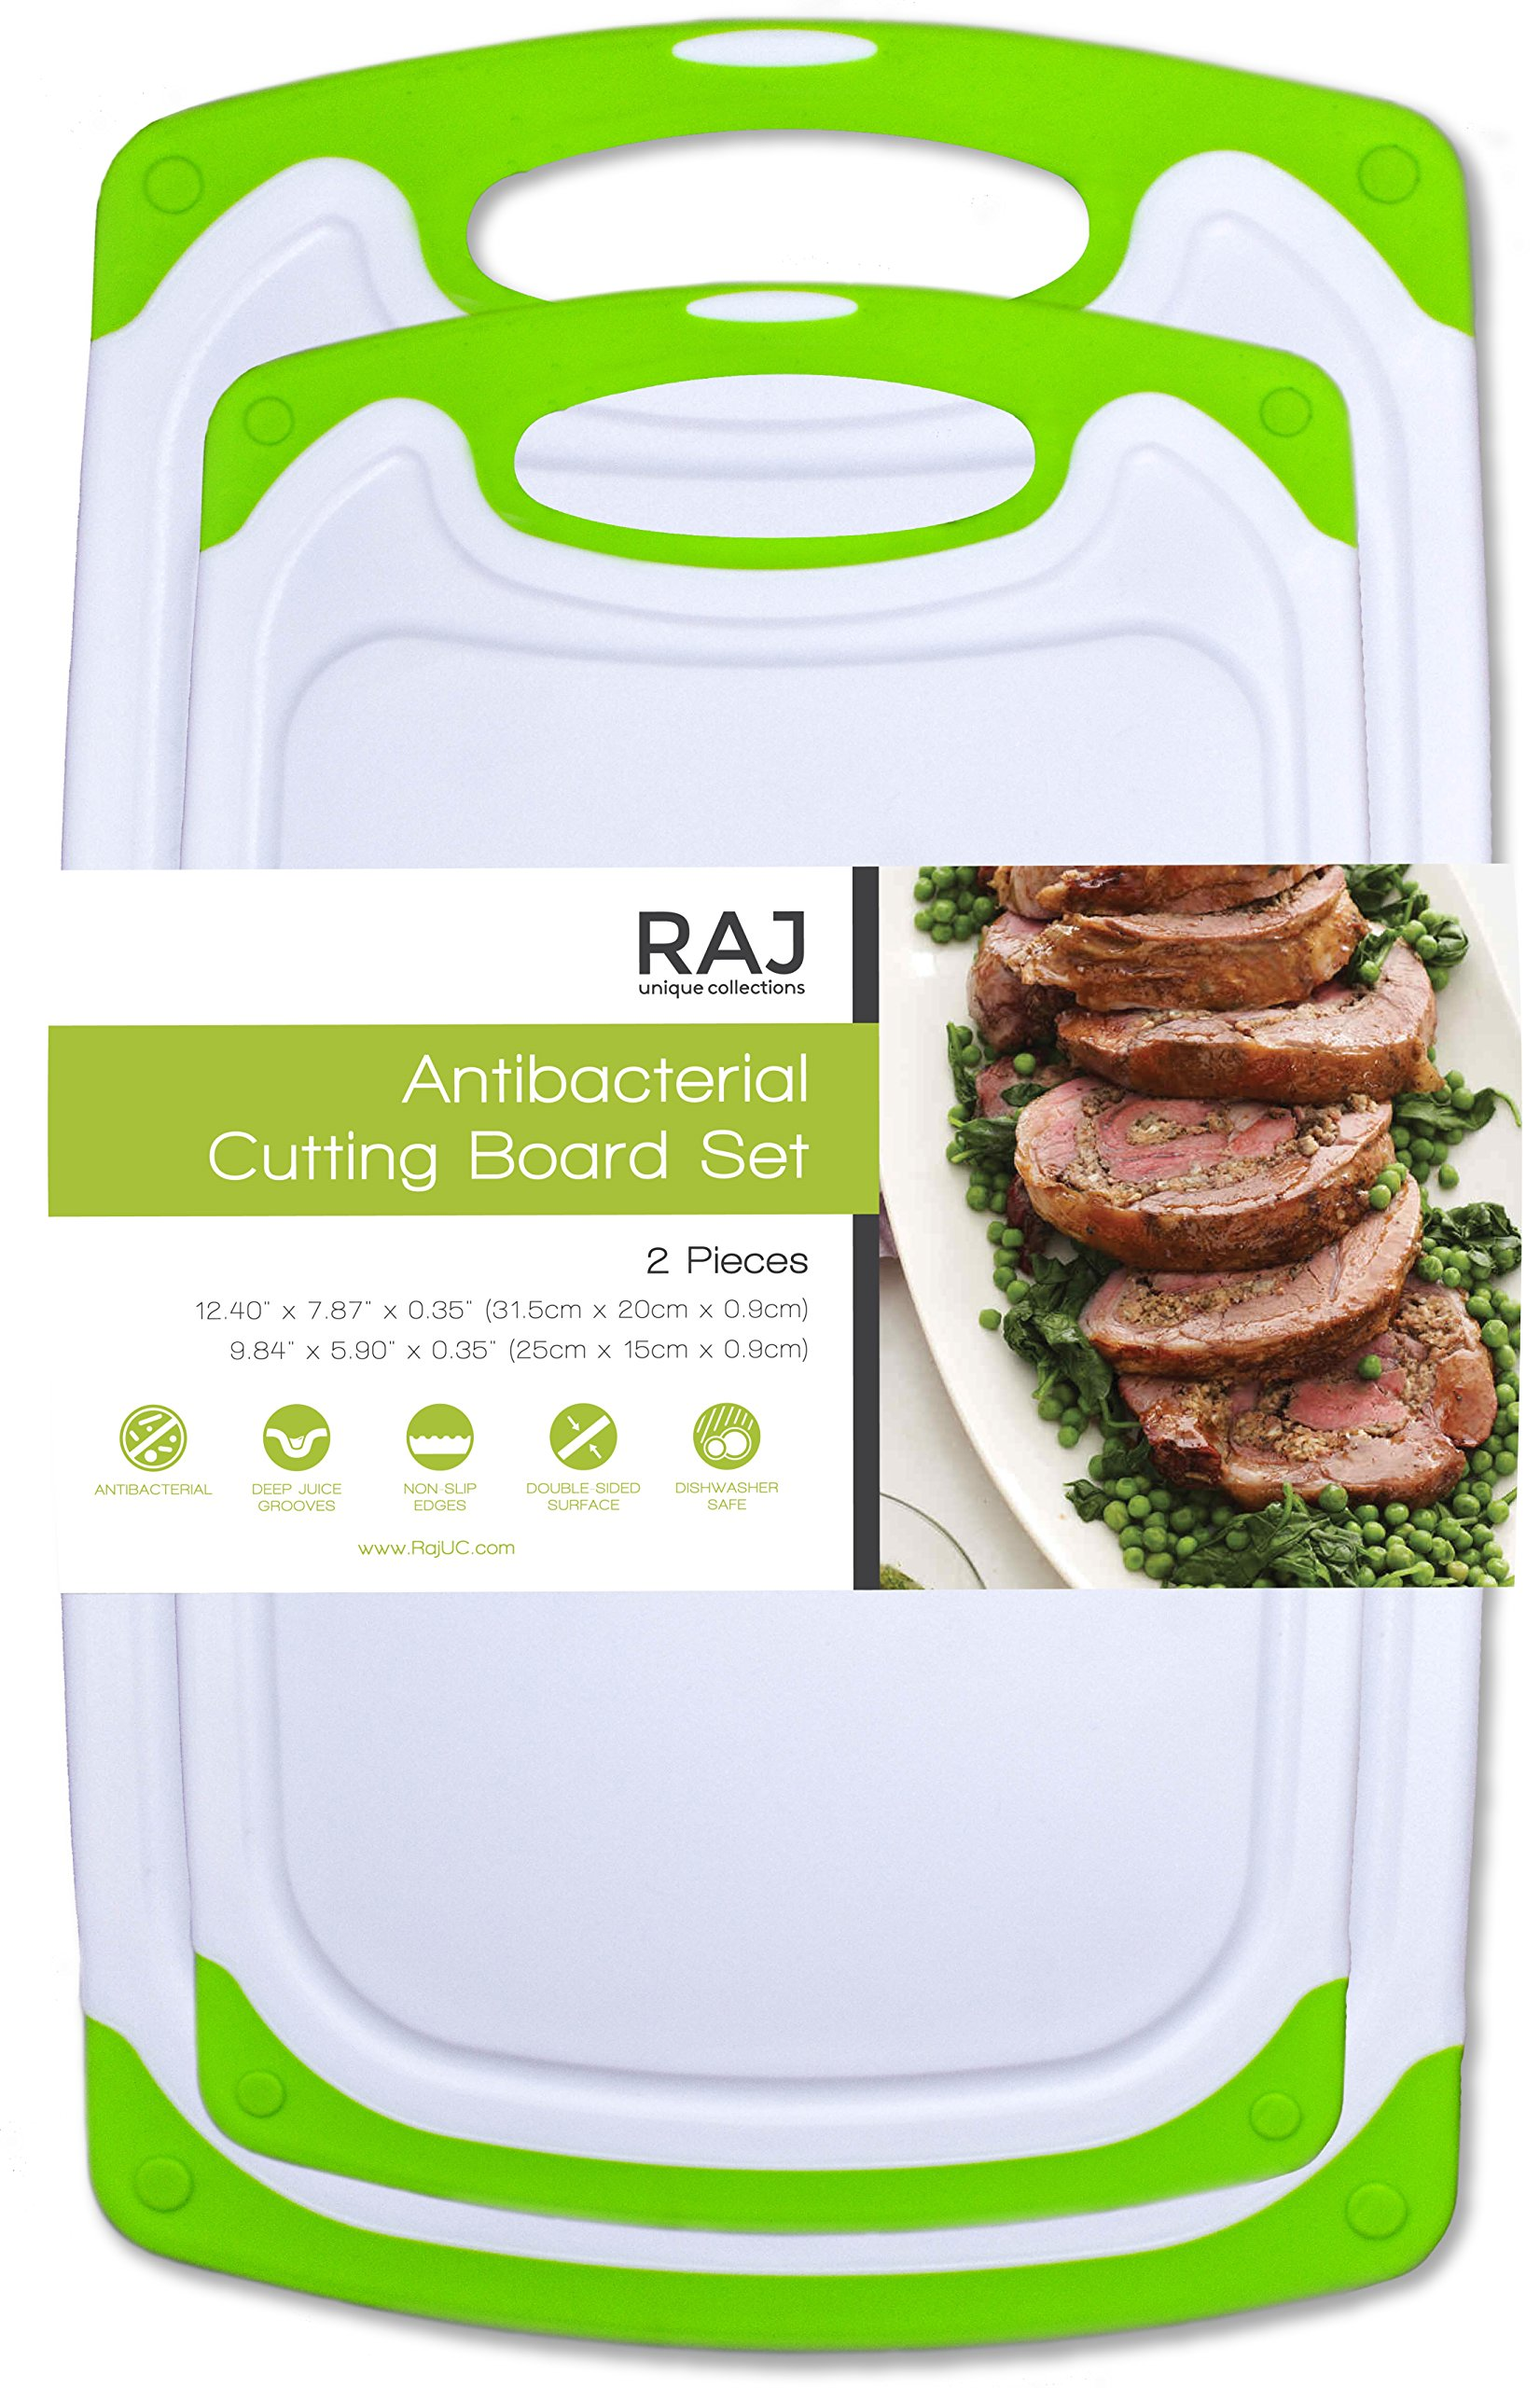 Raj Non-Slip Antibacterial Plastic Cutting Board, Deep Juice Groove, Dishwasher Safe, BPA Free, FDA Approved White and green (2 Pieces, White board with Green Ends)